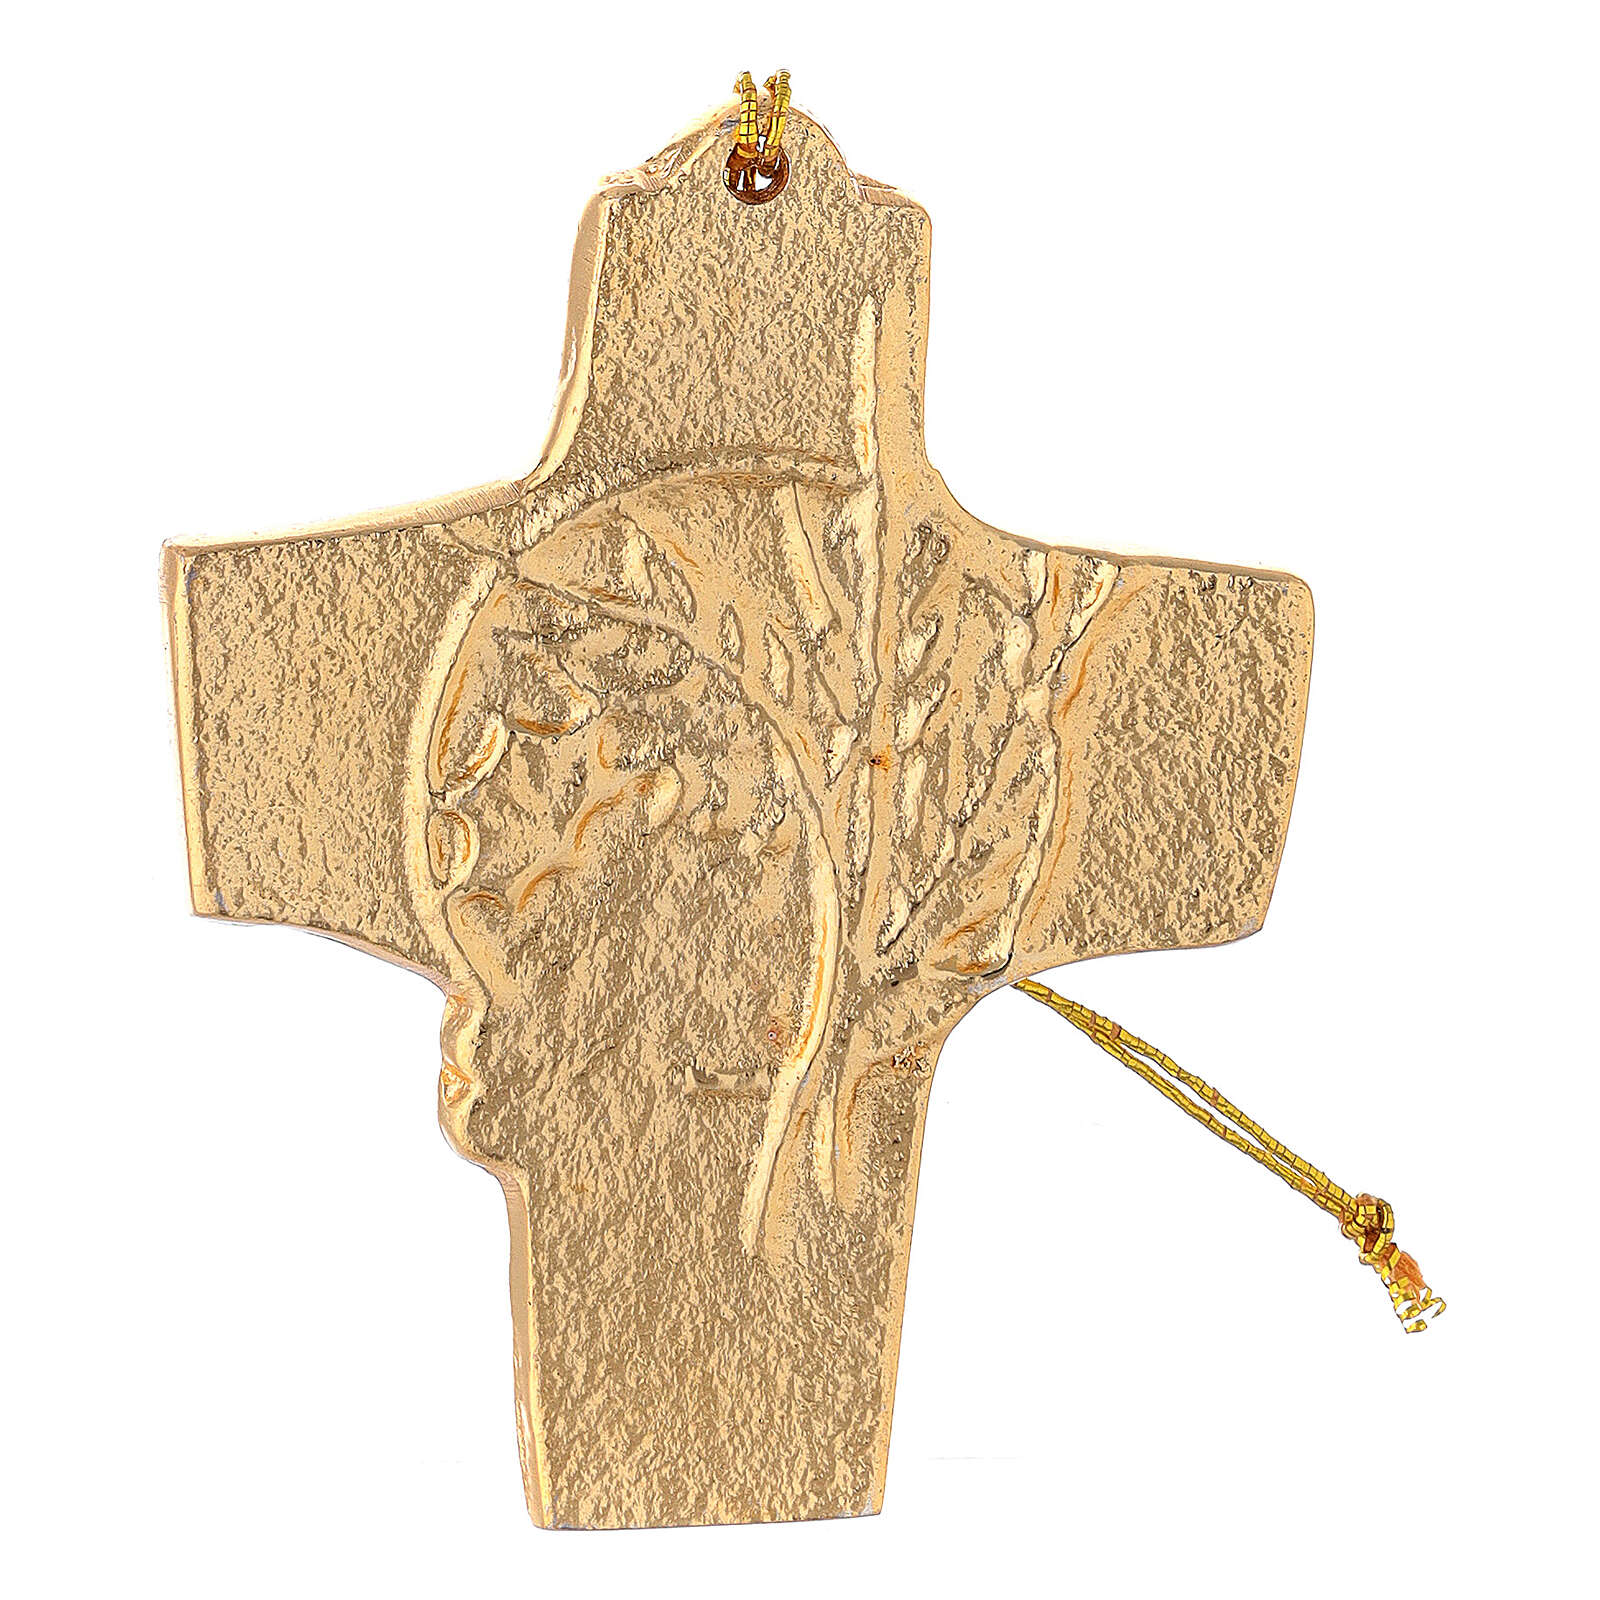 Wall cross with spike and grapes 3 3/4 in gold plated aluminium 4